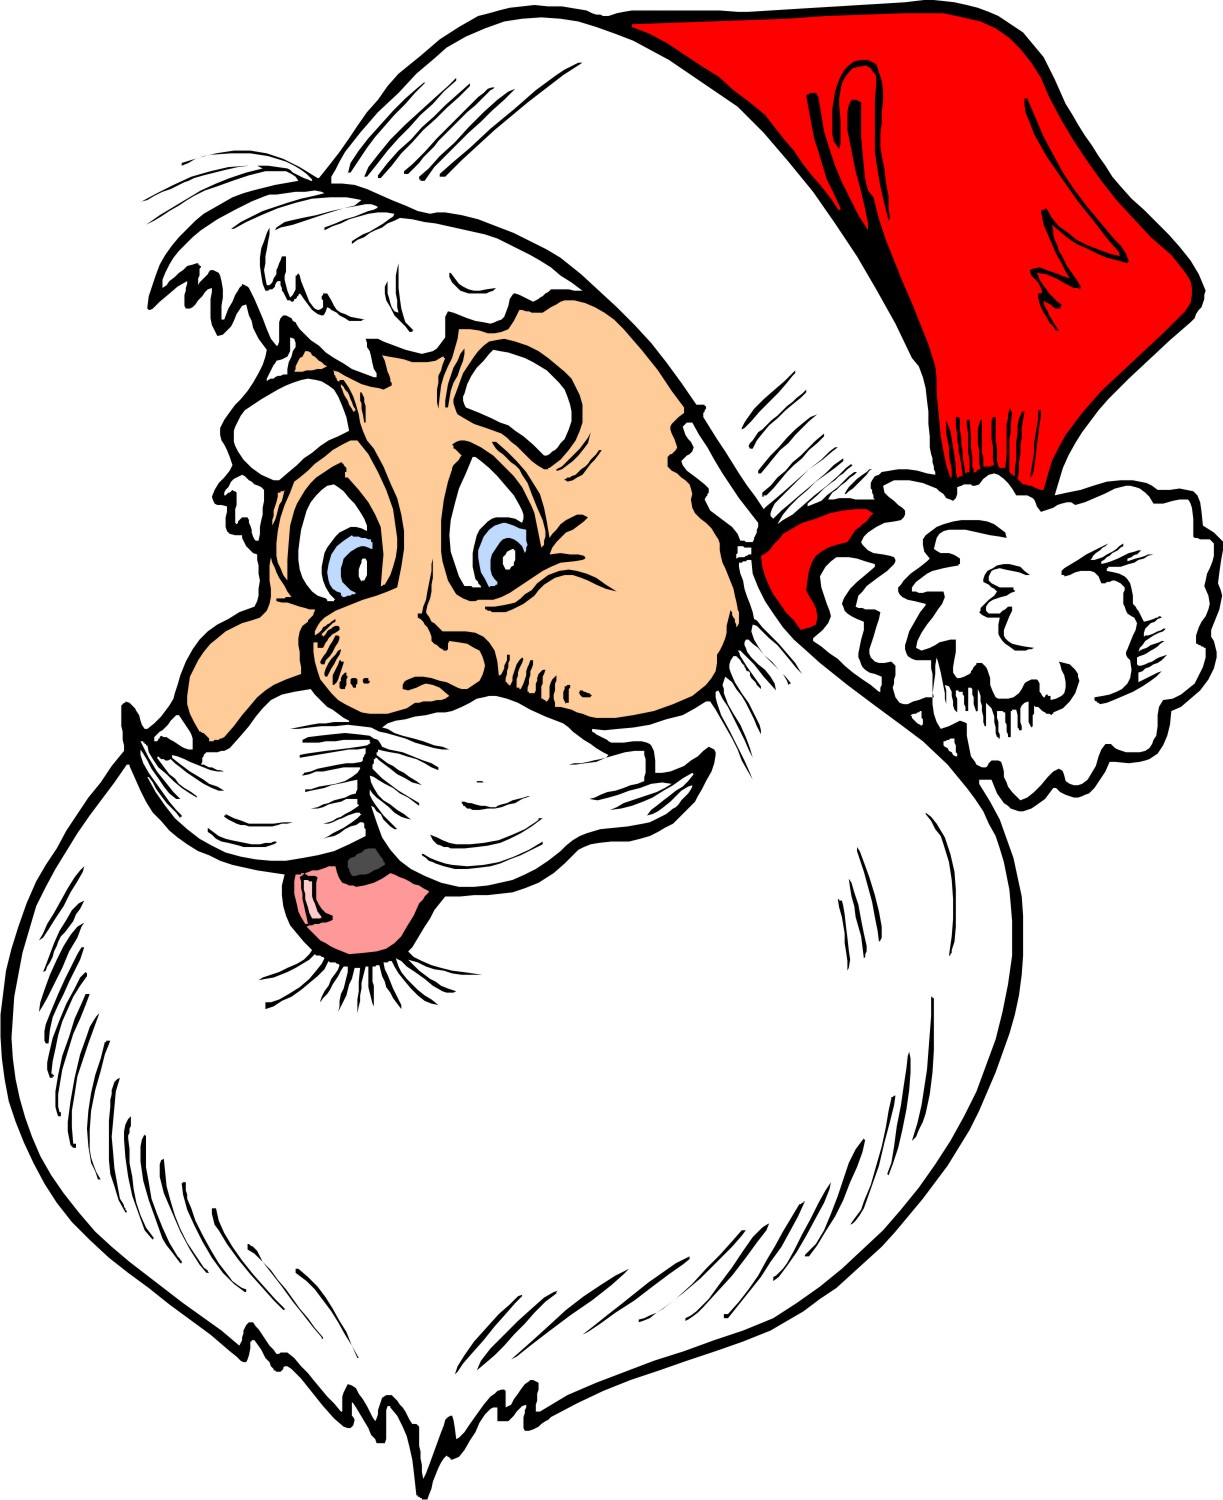 Santa Claus Beard Template This post has been updated